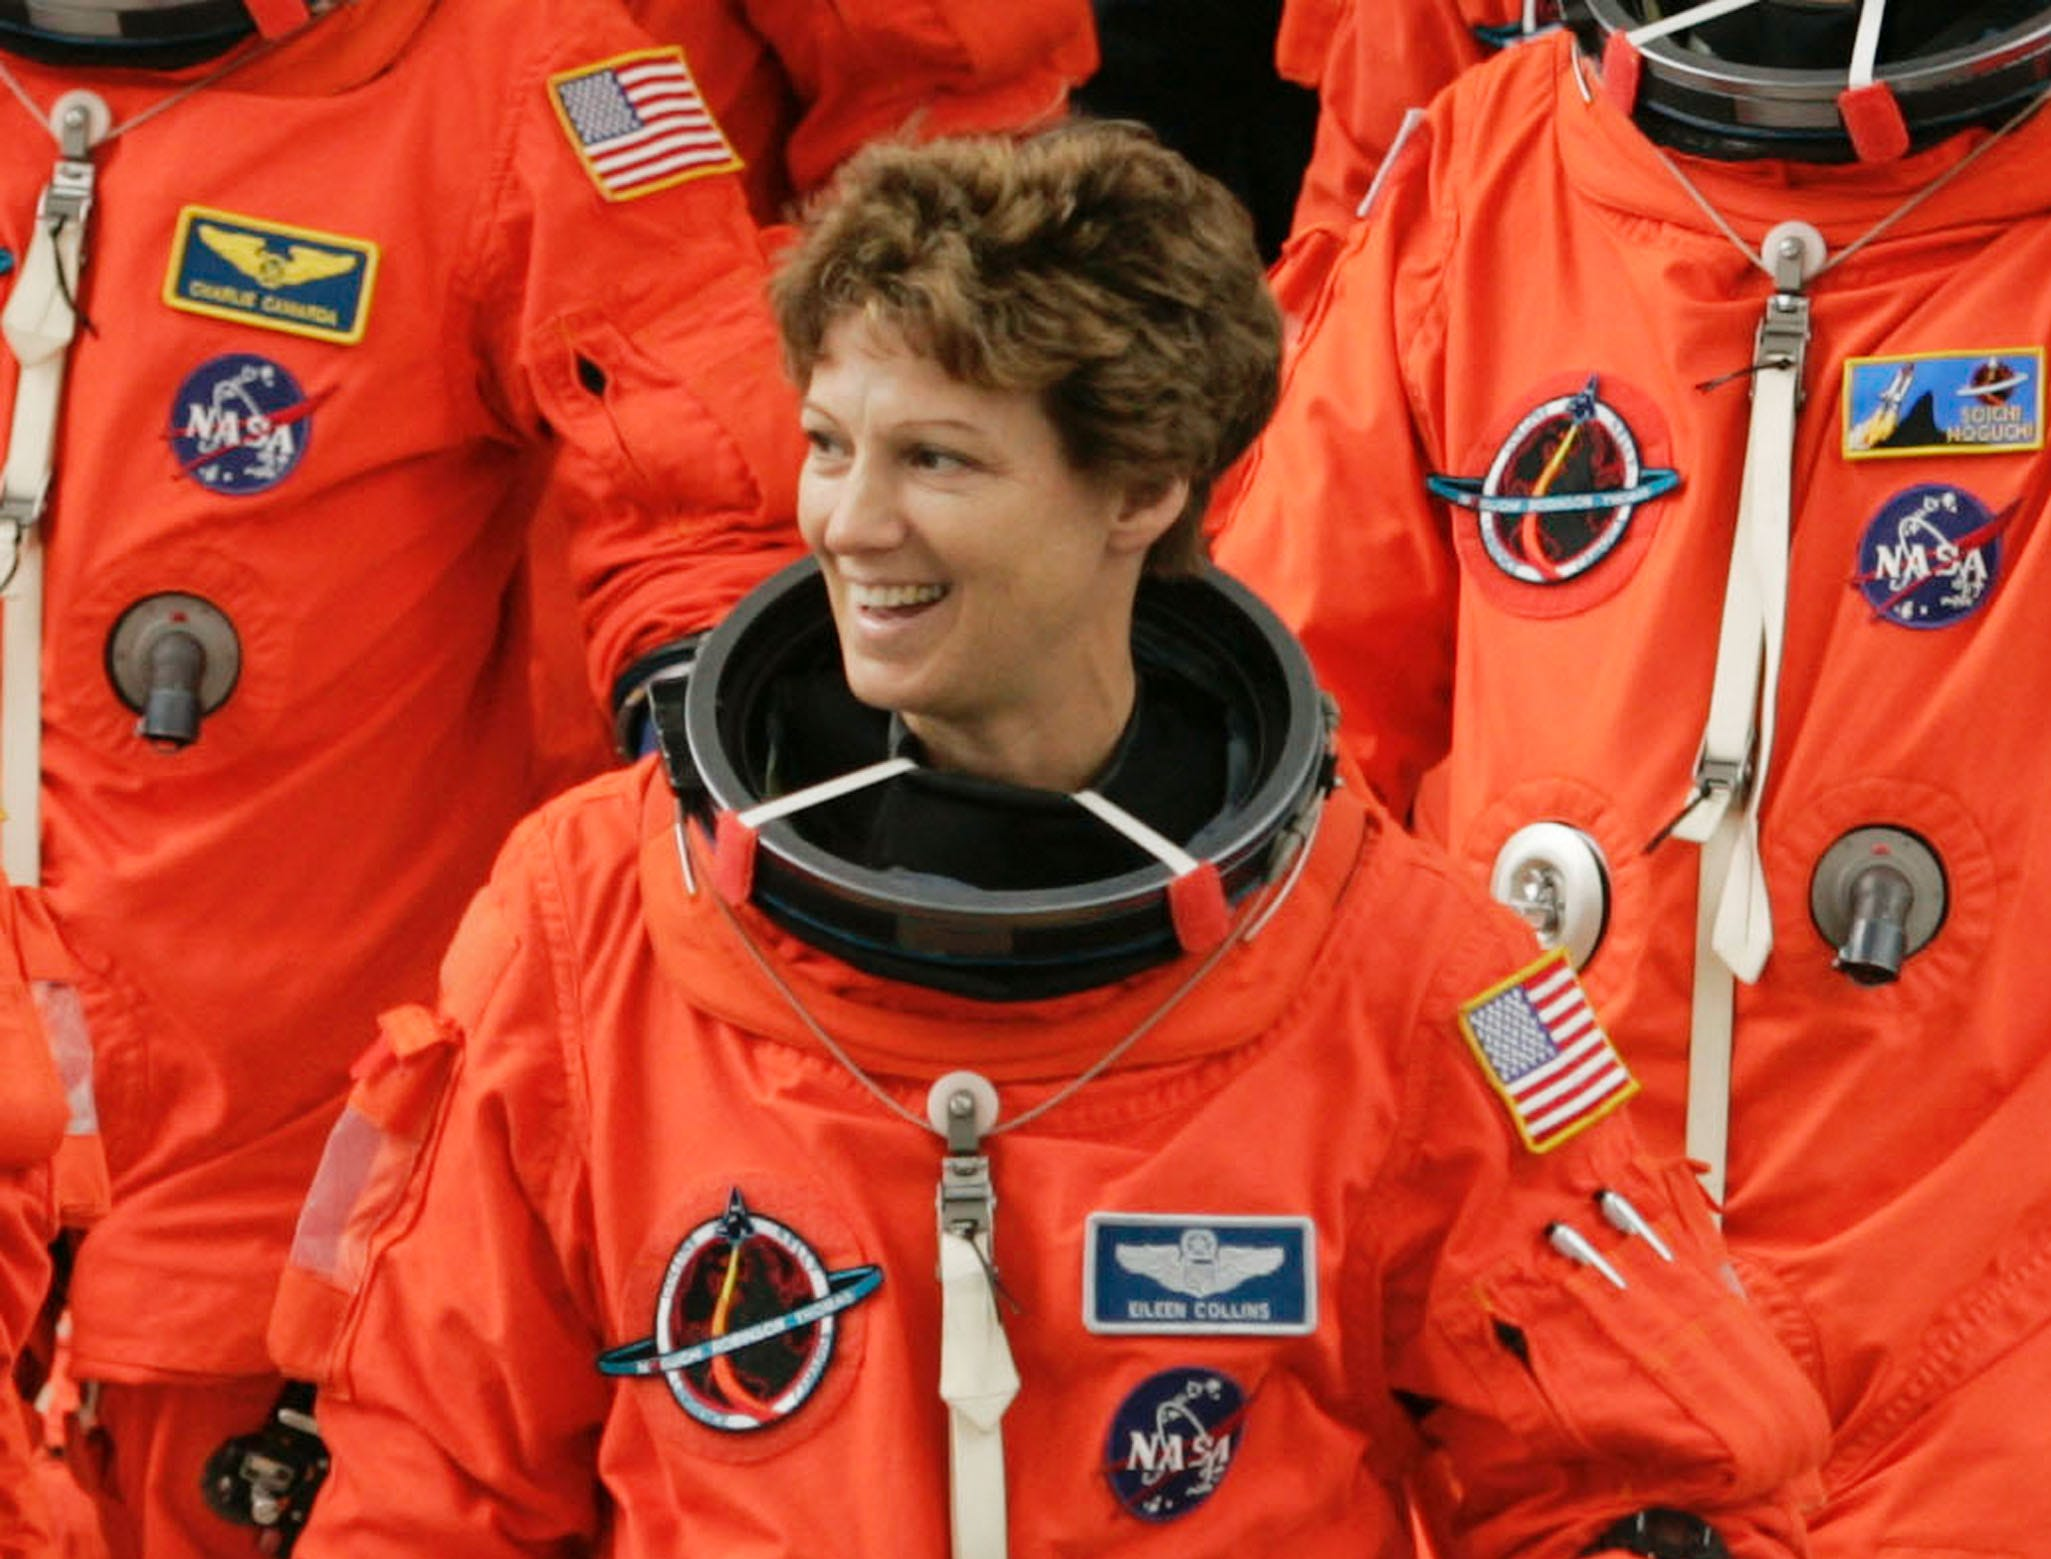 Space Shuttle Discovery commander Eileen Collins walks from the crew area to the astronaut van to be driven to the launch pad at the Kennedy Space Center July 13, 2005 in Cape Canaveral, Florida. Collins is a native of Elmira, NY.